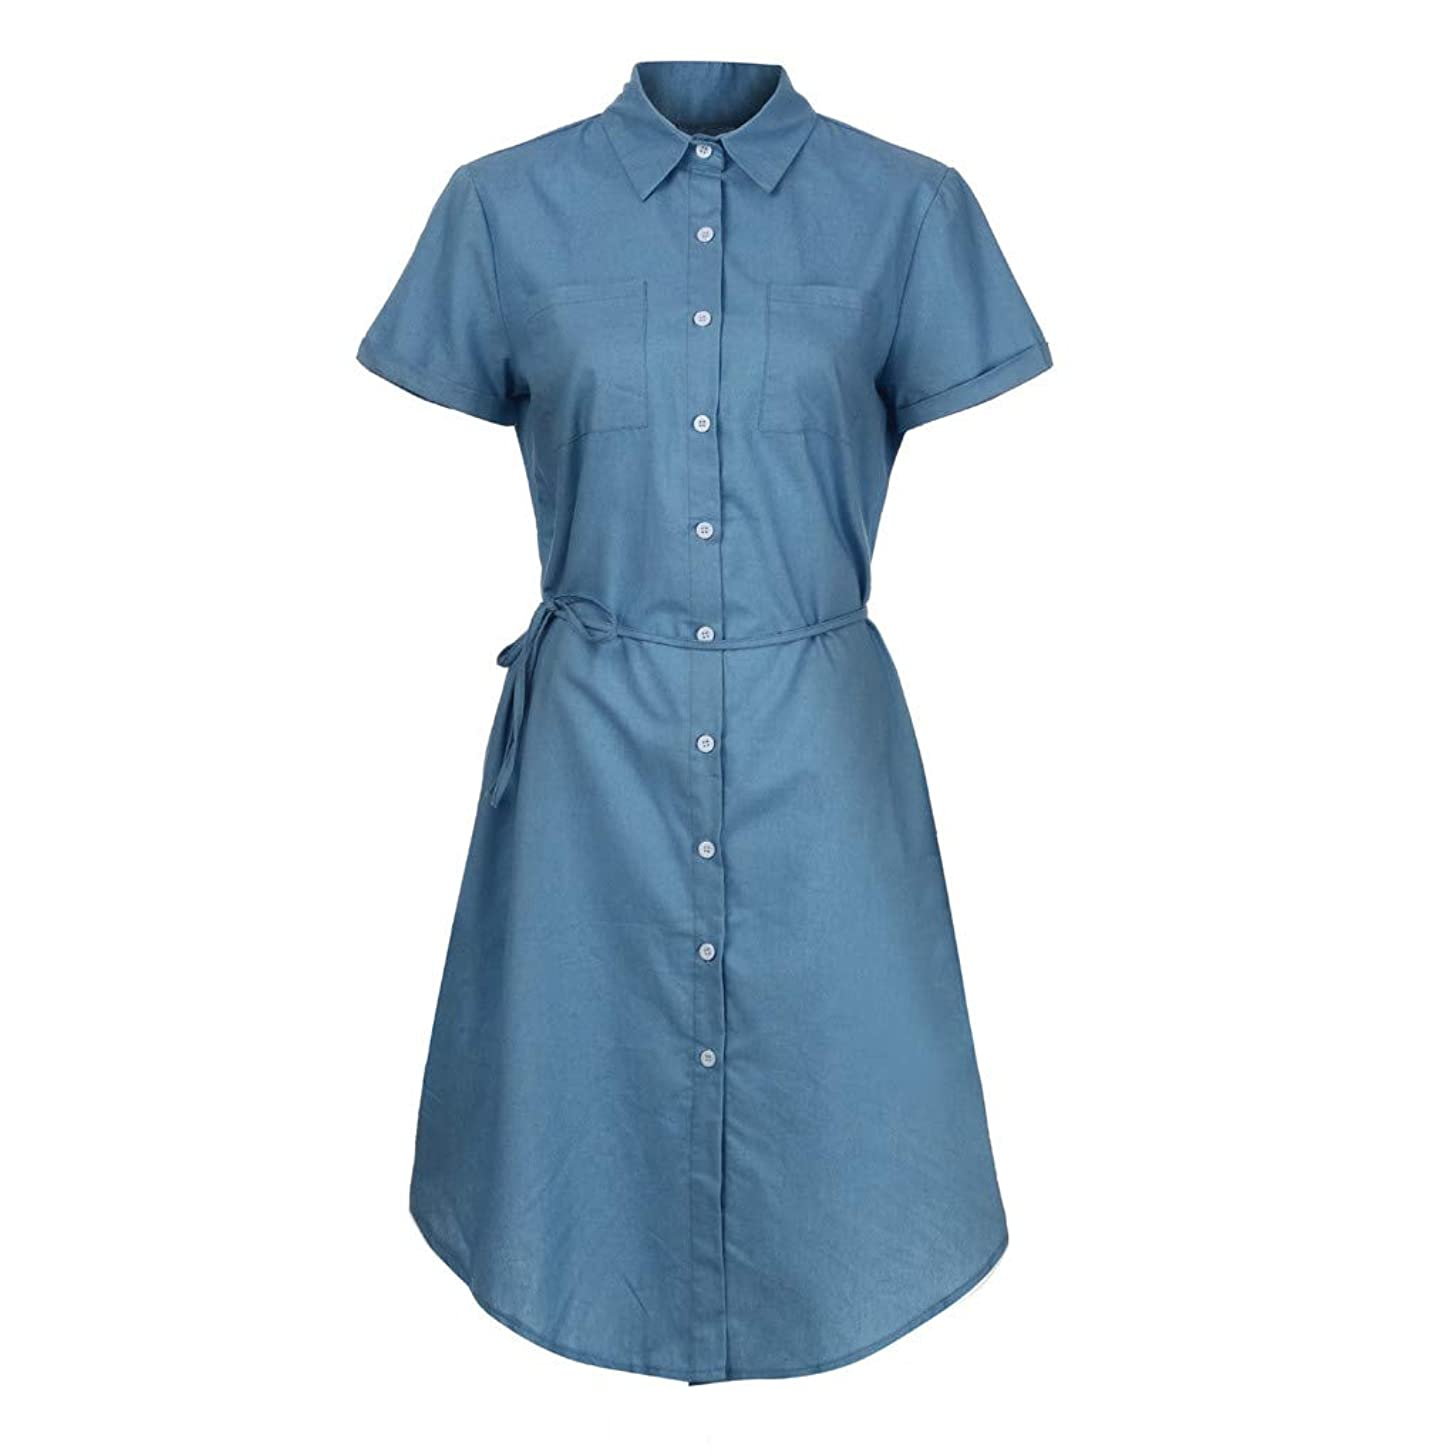 WYTong Dress For Women Denim Short-Sleeved Solid Color Button Strap Dress Casual Round Neck Bow Tie Pencil Dress